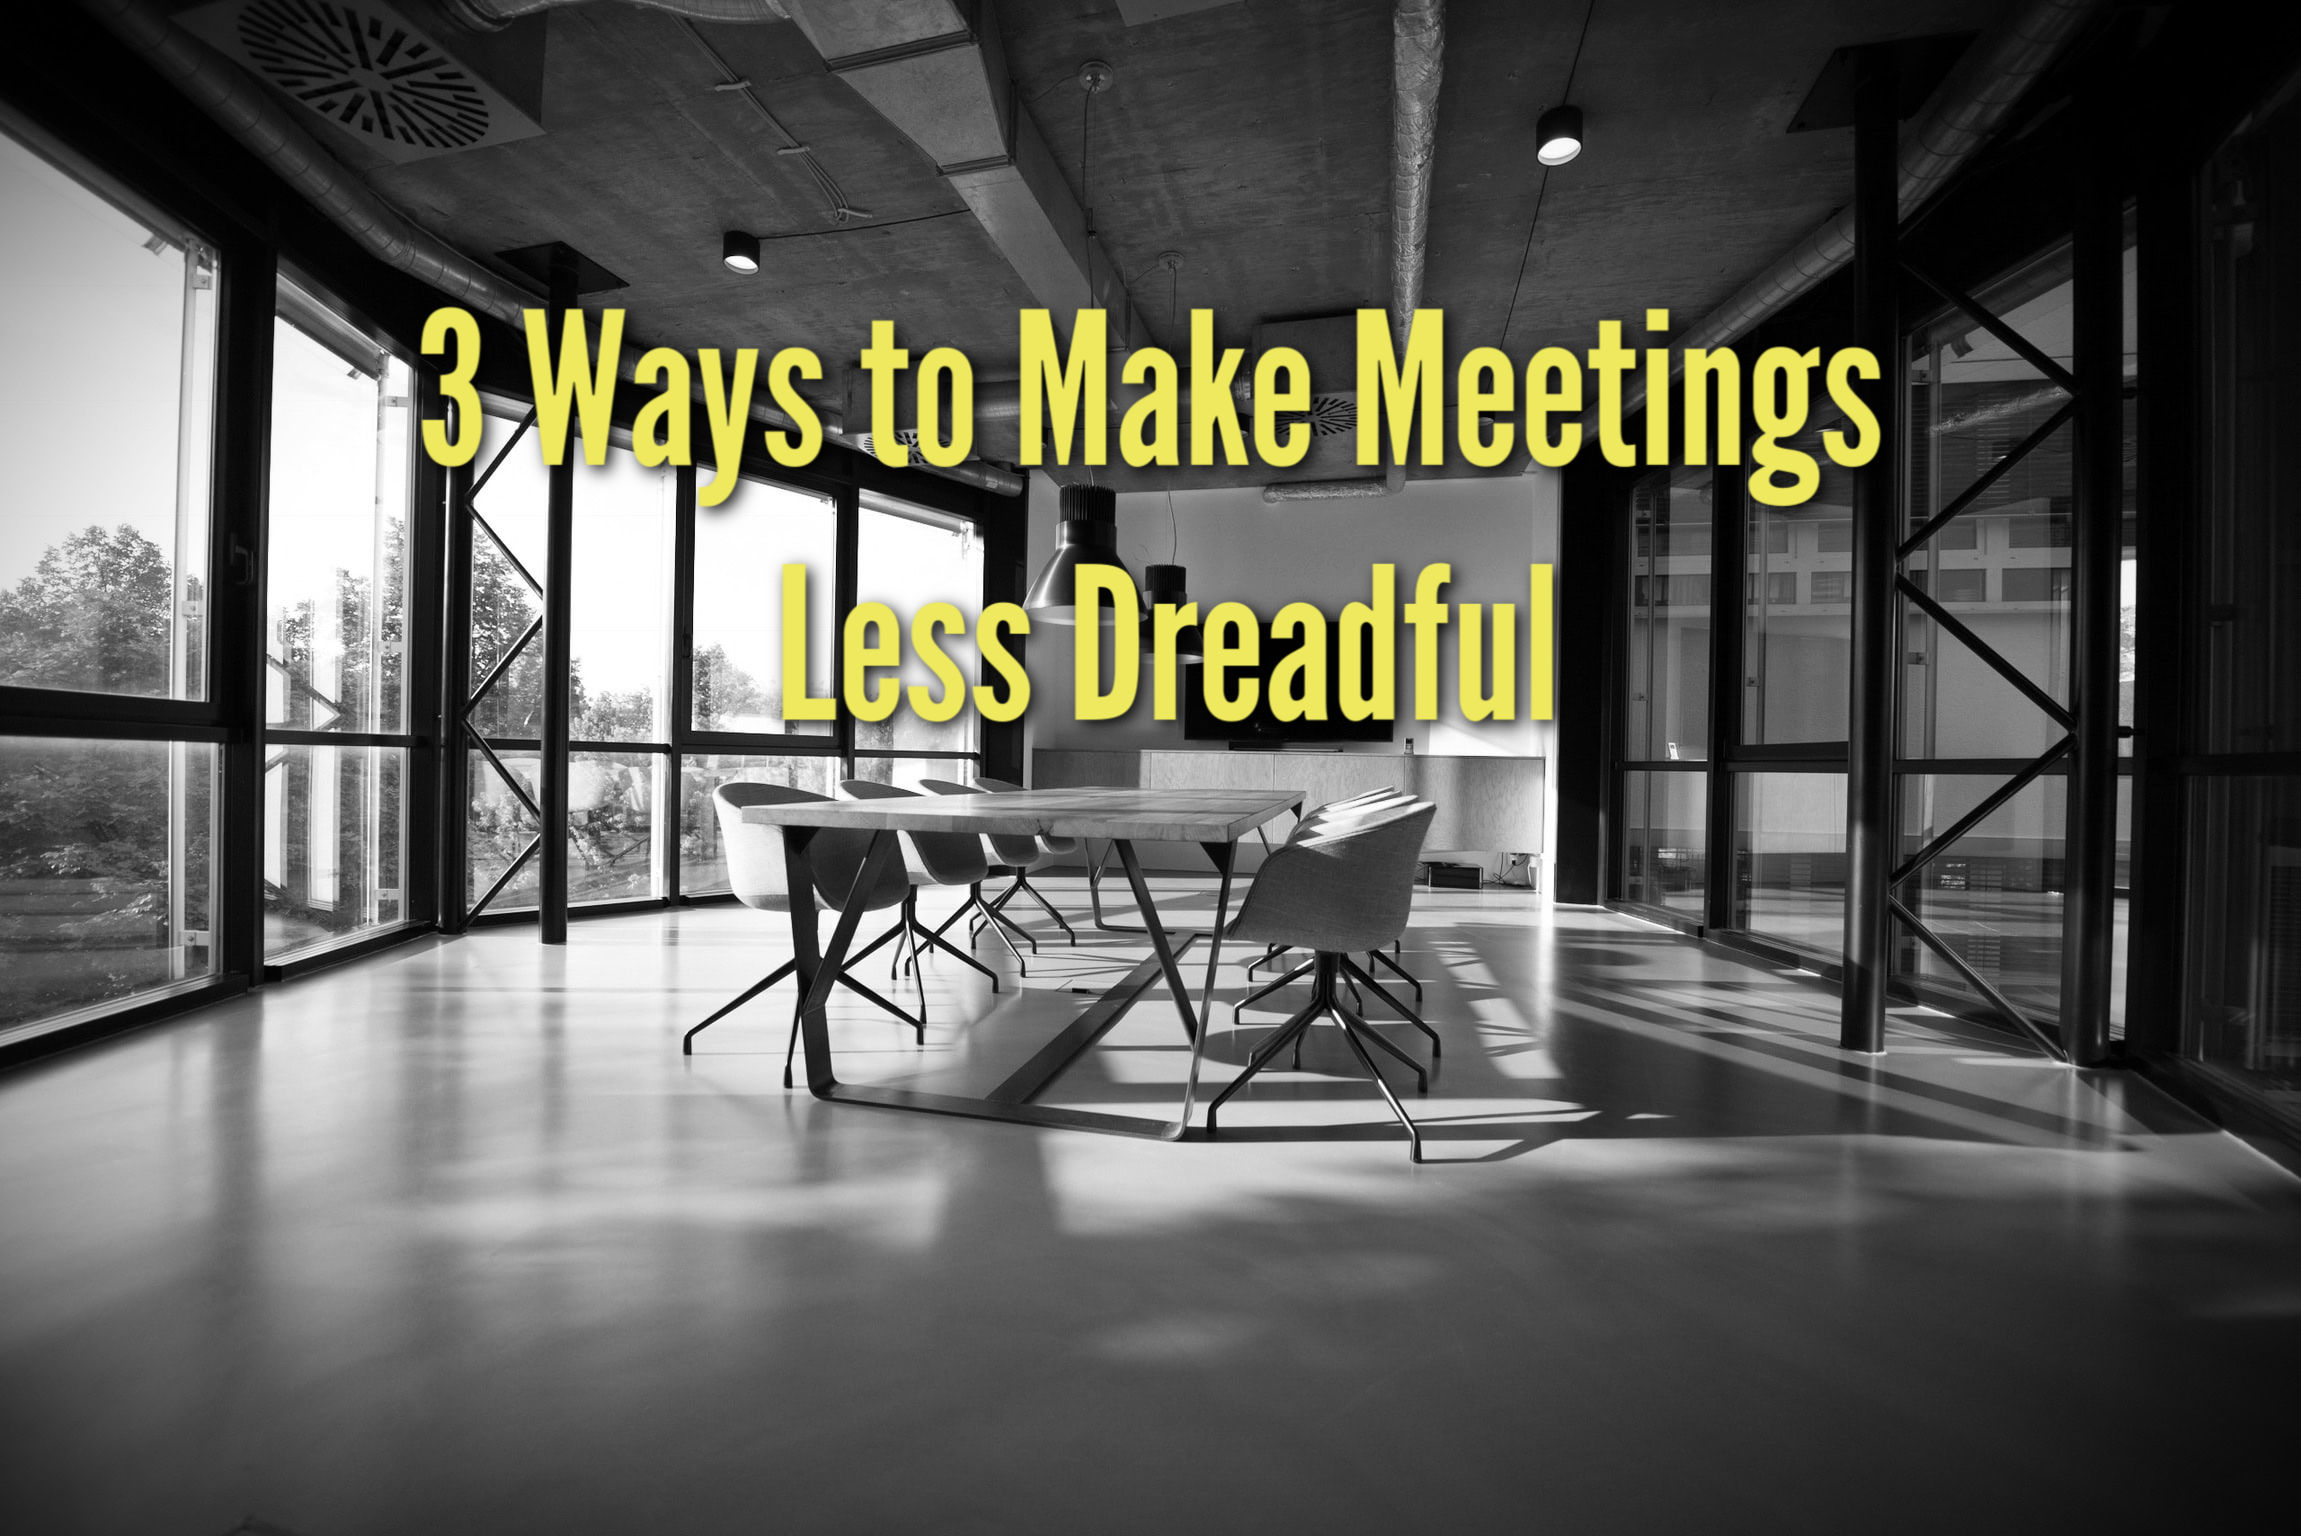 3 Ways to Make Meetings Less Dreadful